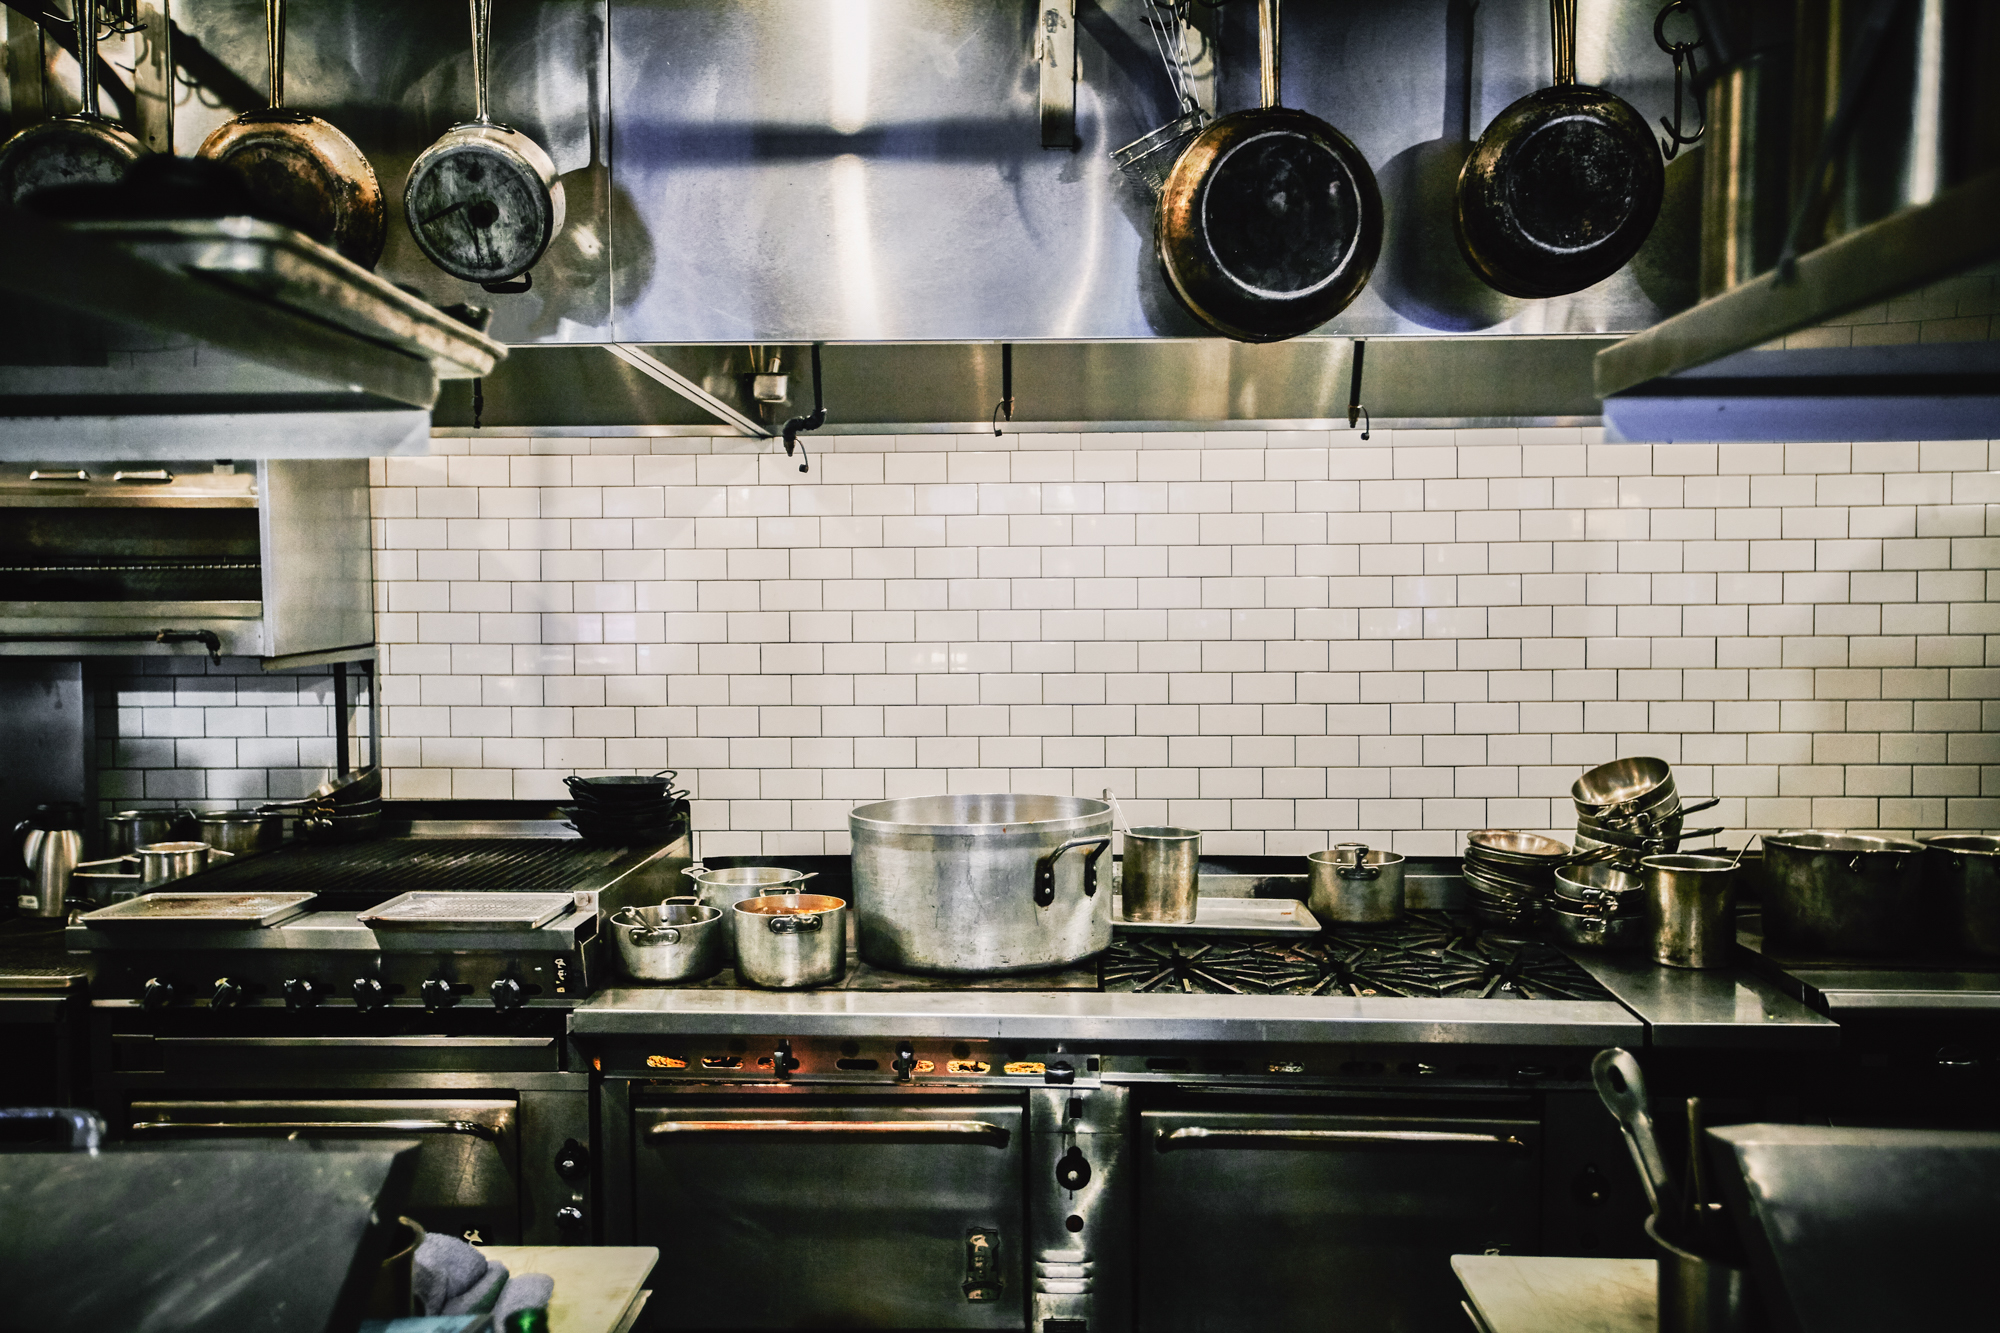 FW Pro | What The Stimulus Means for the Restaurant Industry